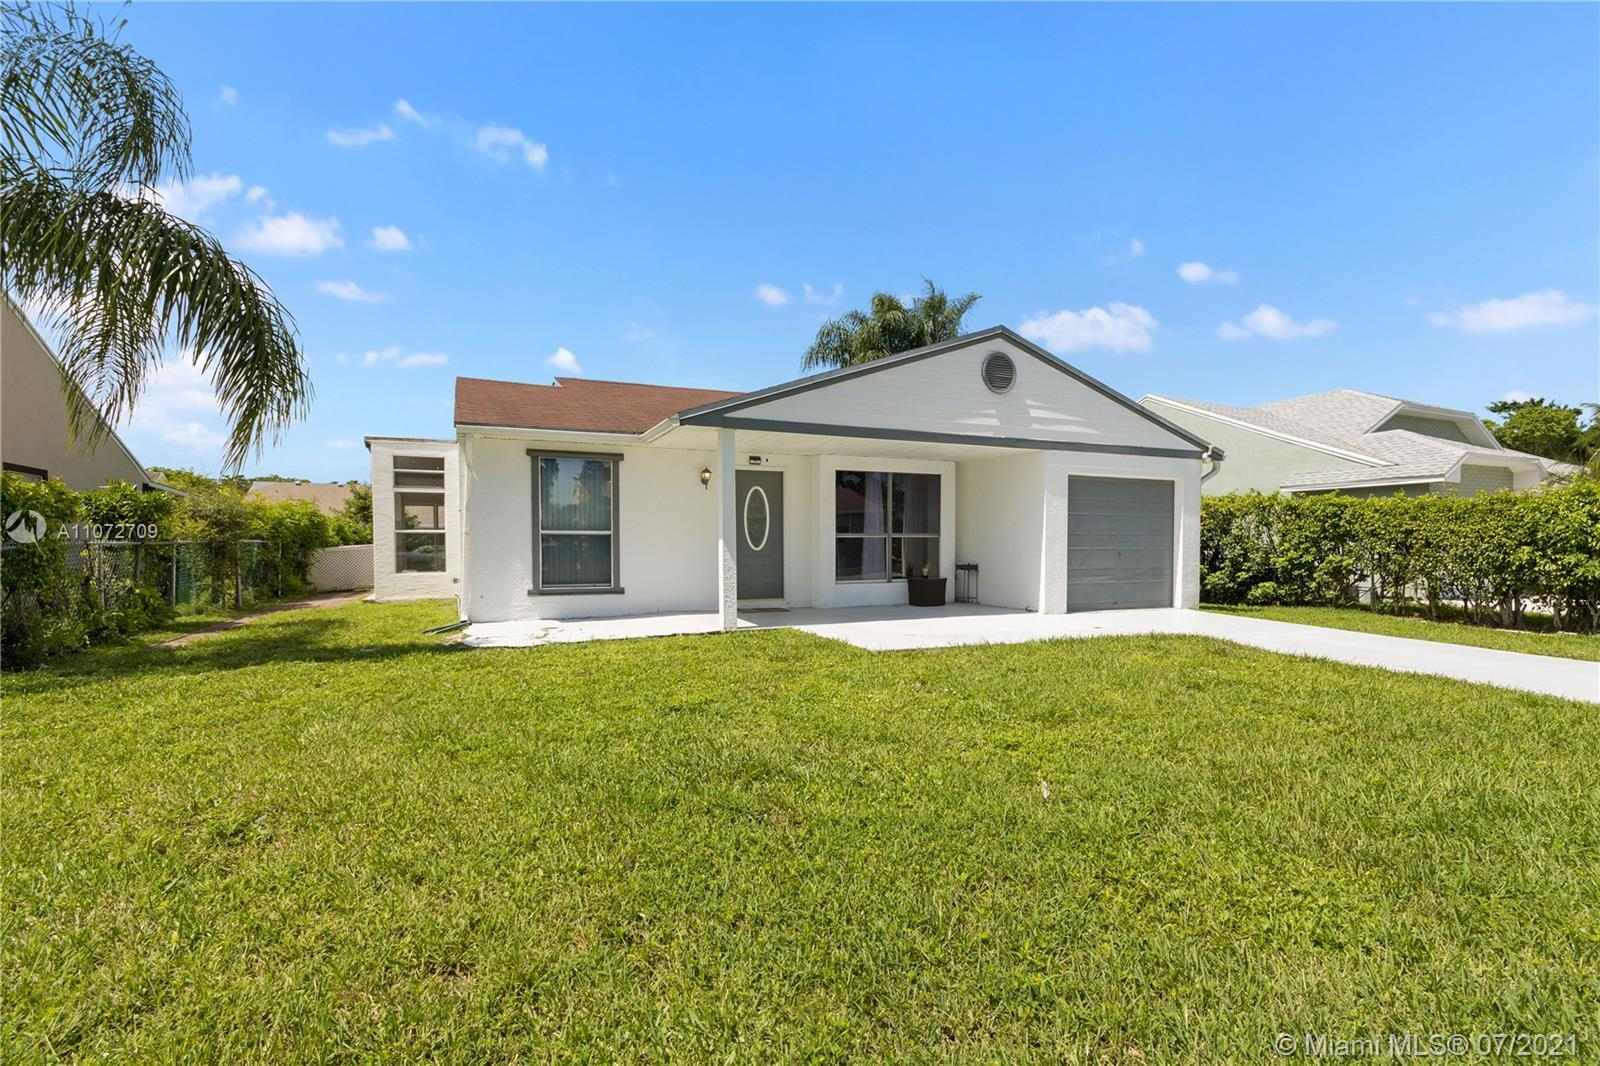 Beautifully remodeled 3 beds / 3 baths plus patio room (the garage was converted to the 3rd bed) sin